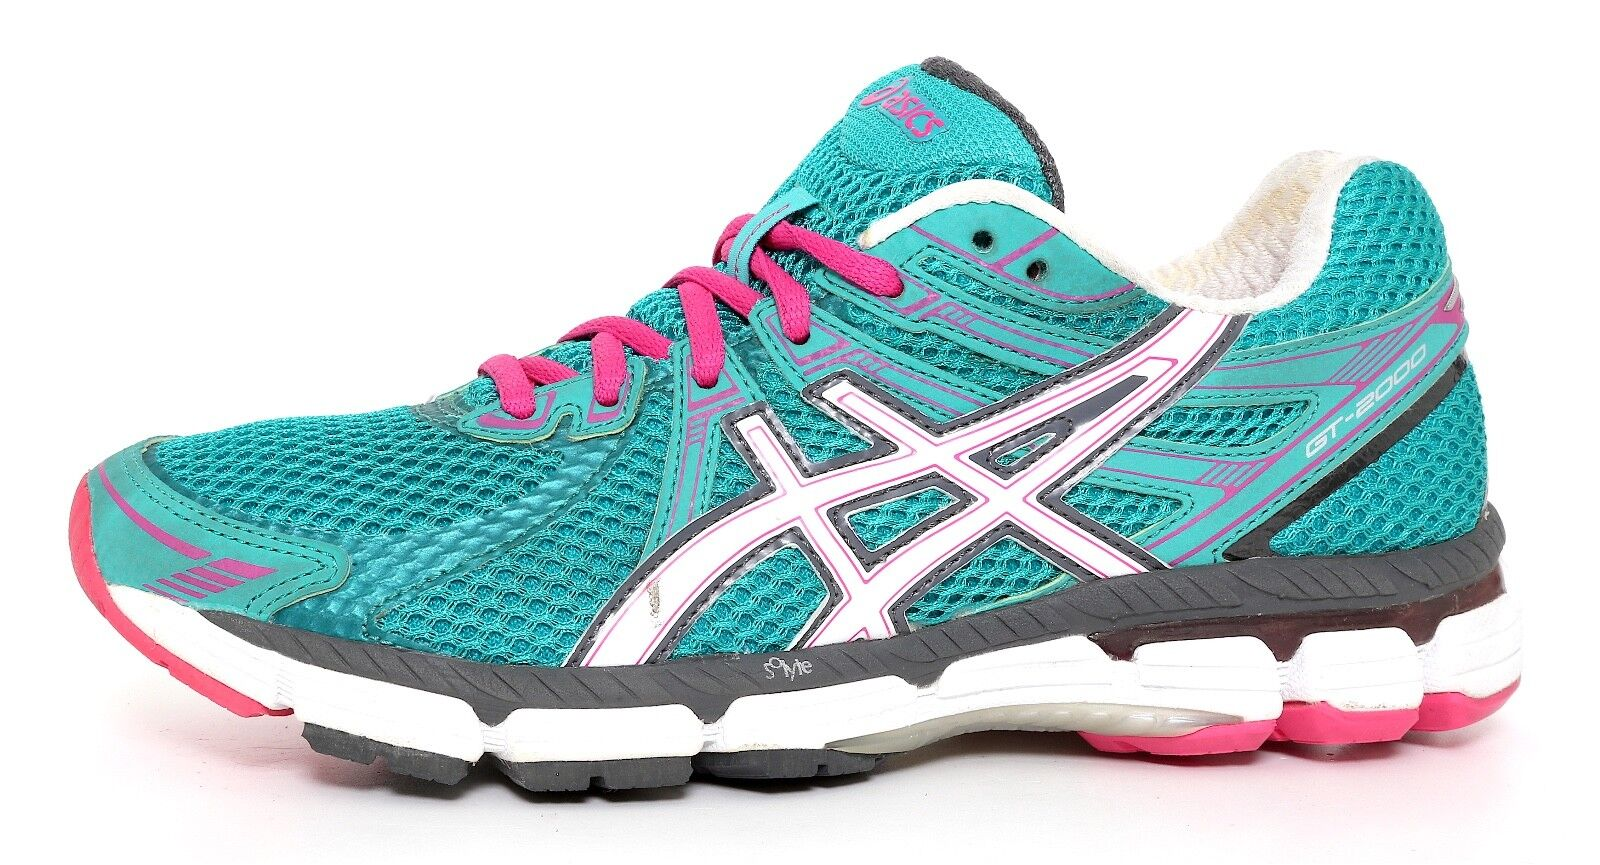 Asics GT 2000 Running scarpe Turquoise donna Sz 7.5 5085 5085 5085 d77f72